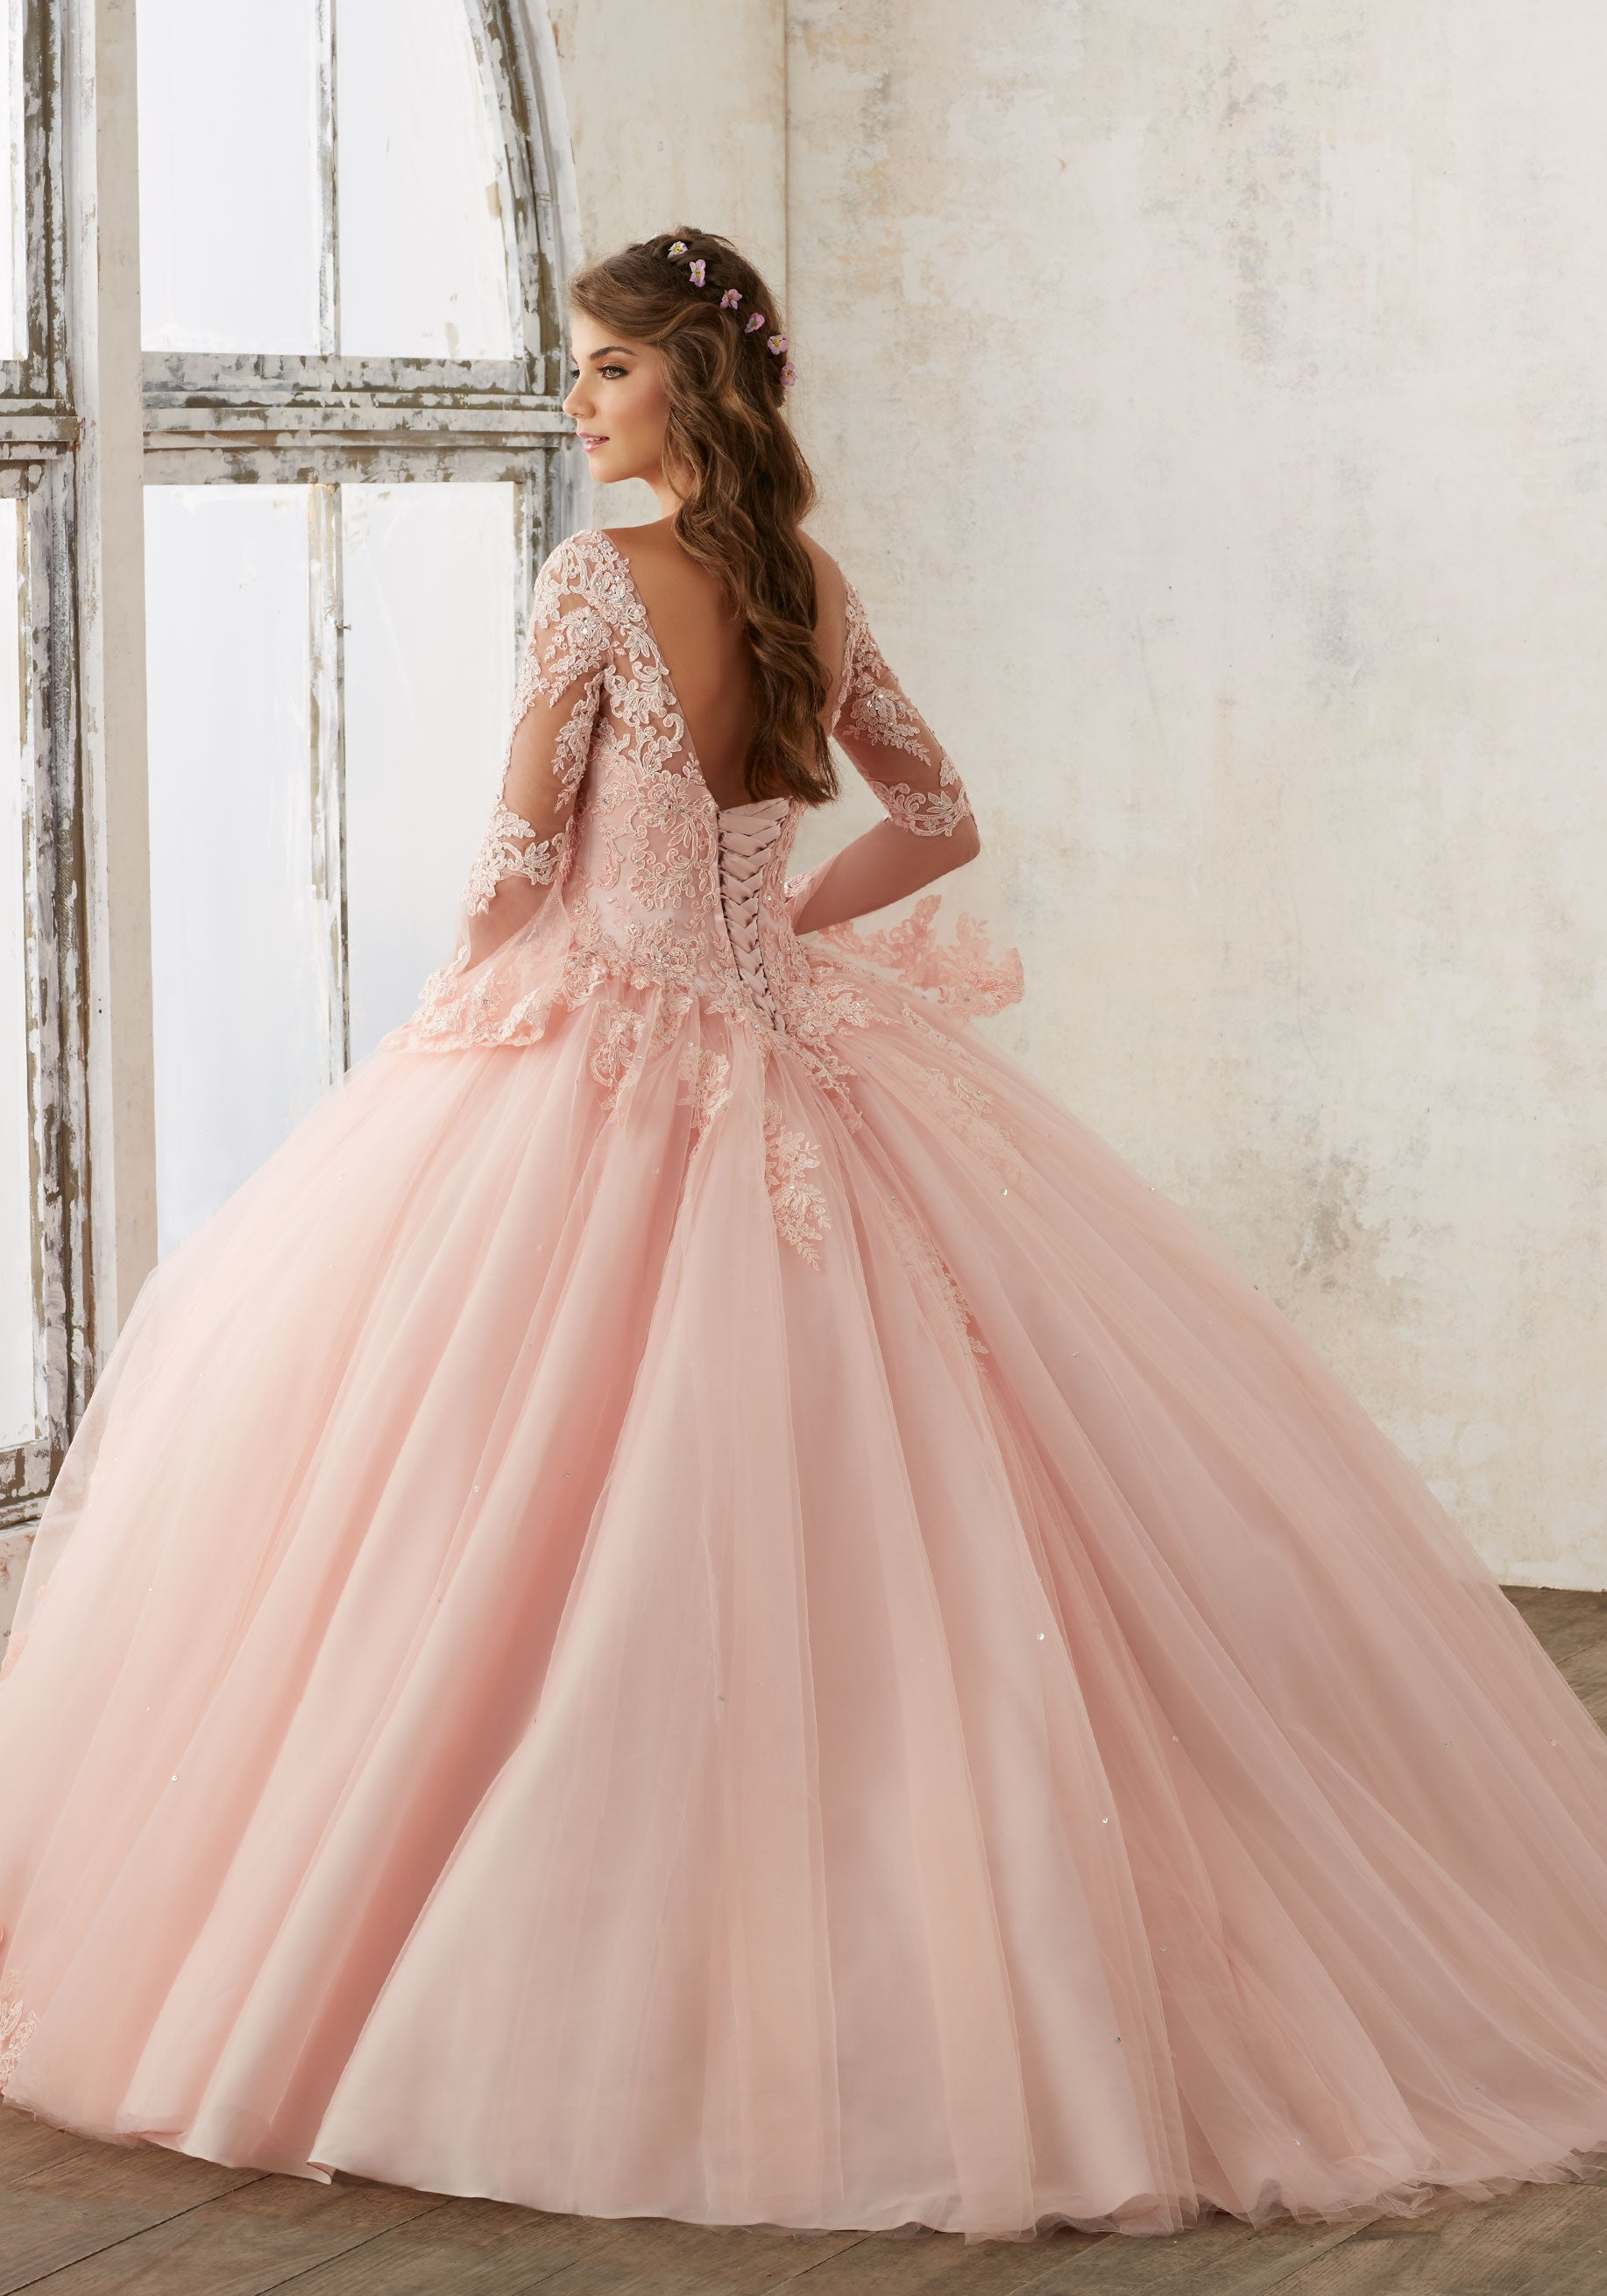 59904 Quince Dress